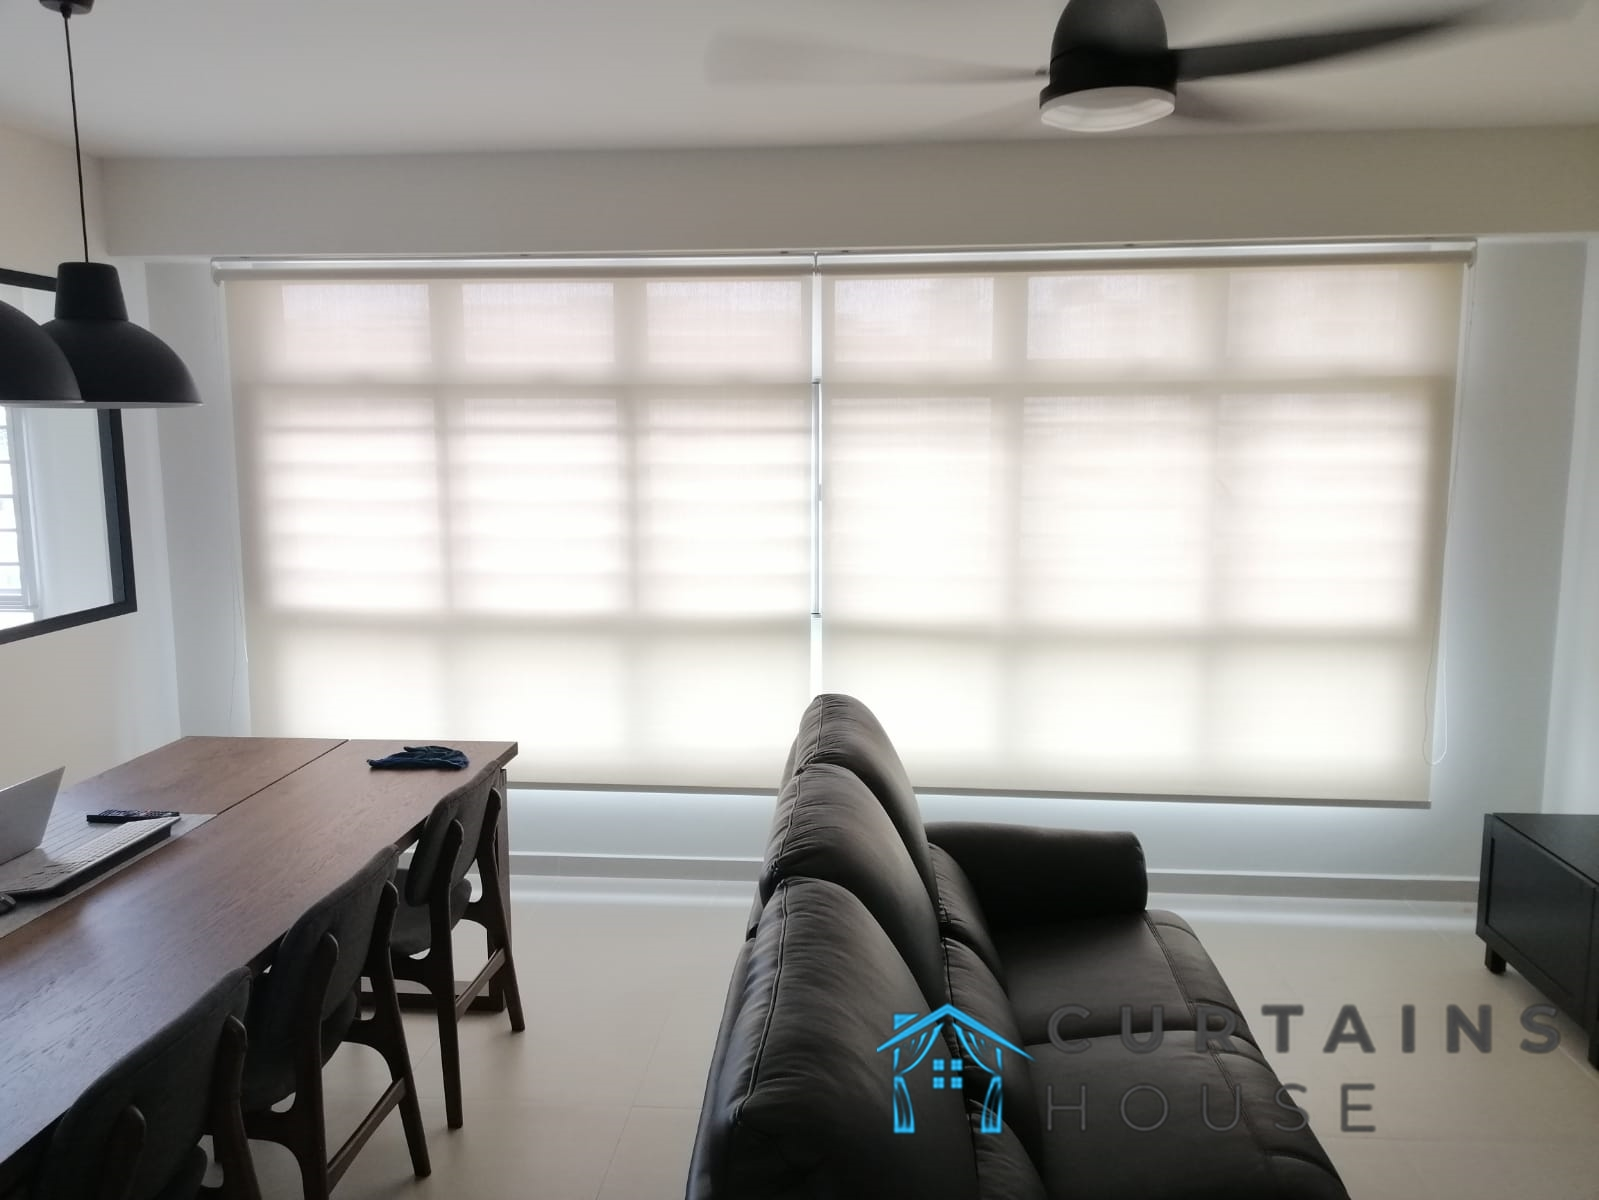 Sheer Roller Blinds Living Room Dining Room Curtains House Singapore HDB – Tiong Bahru